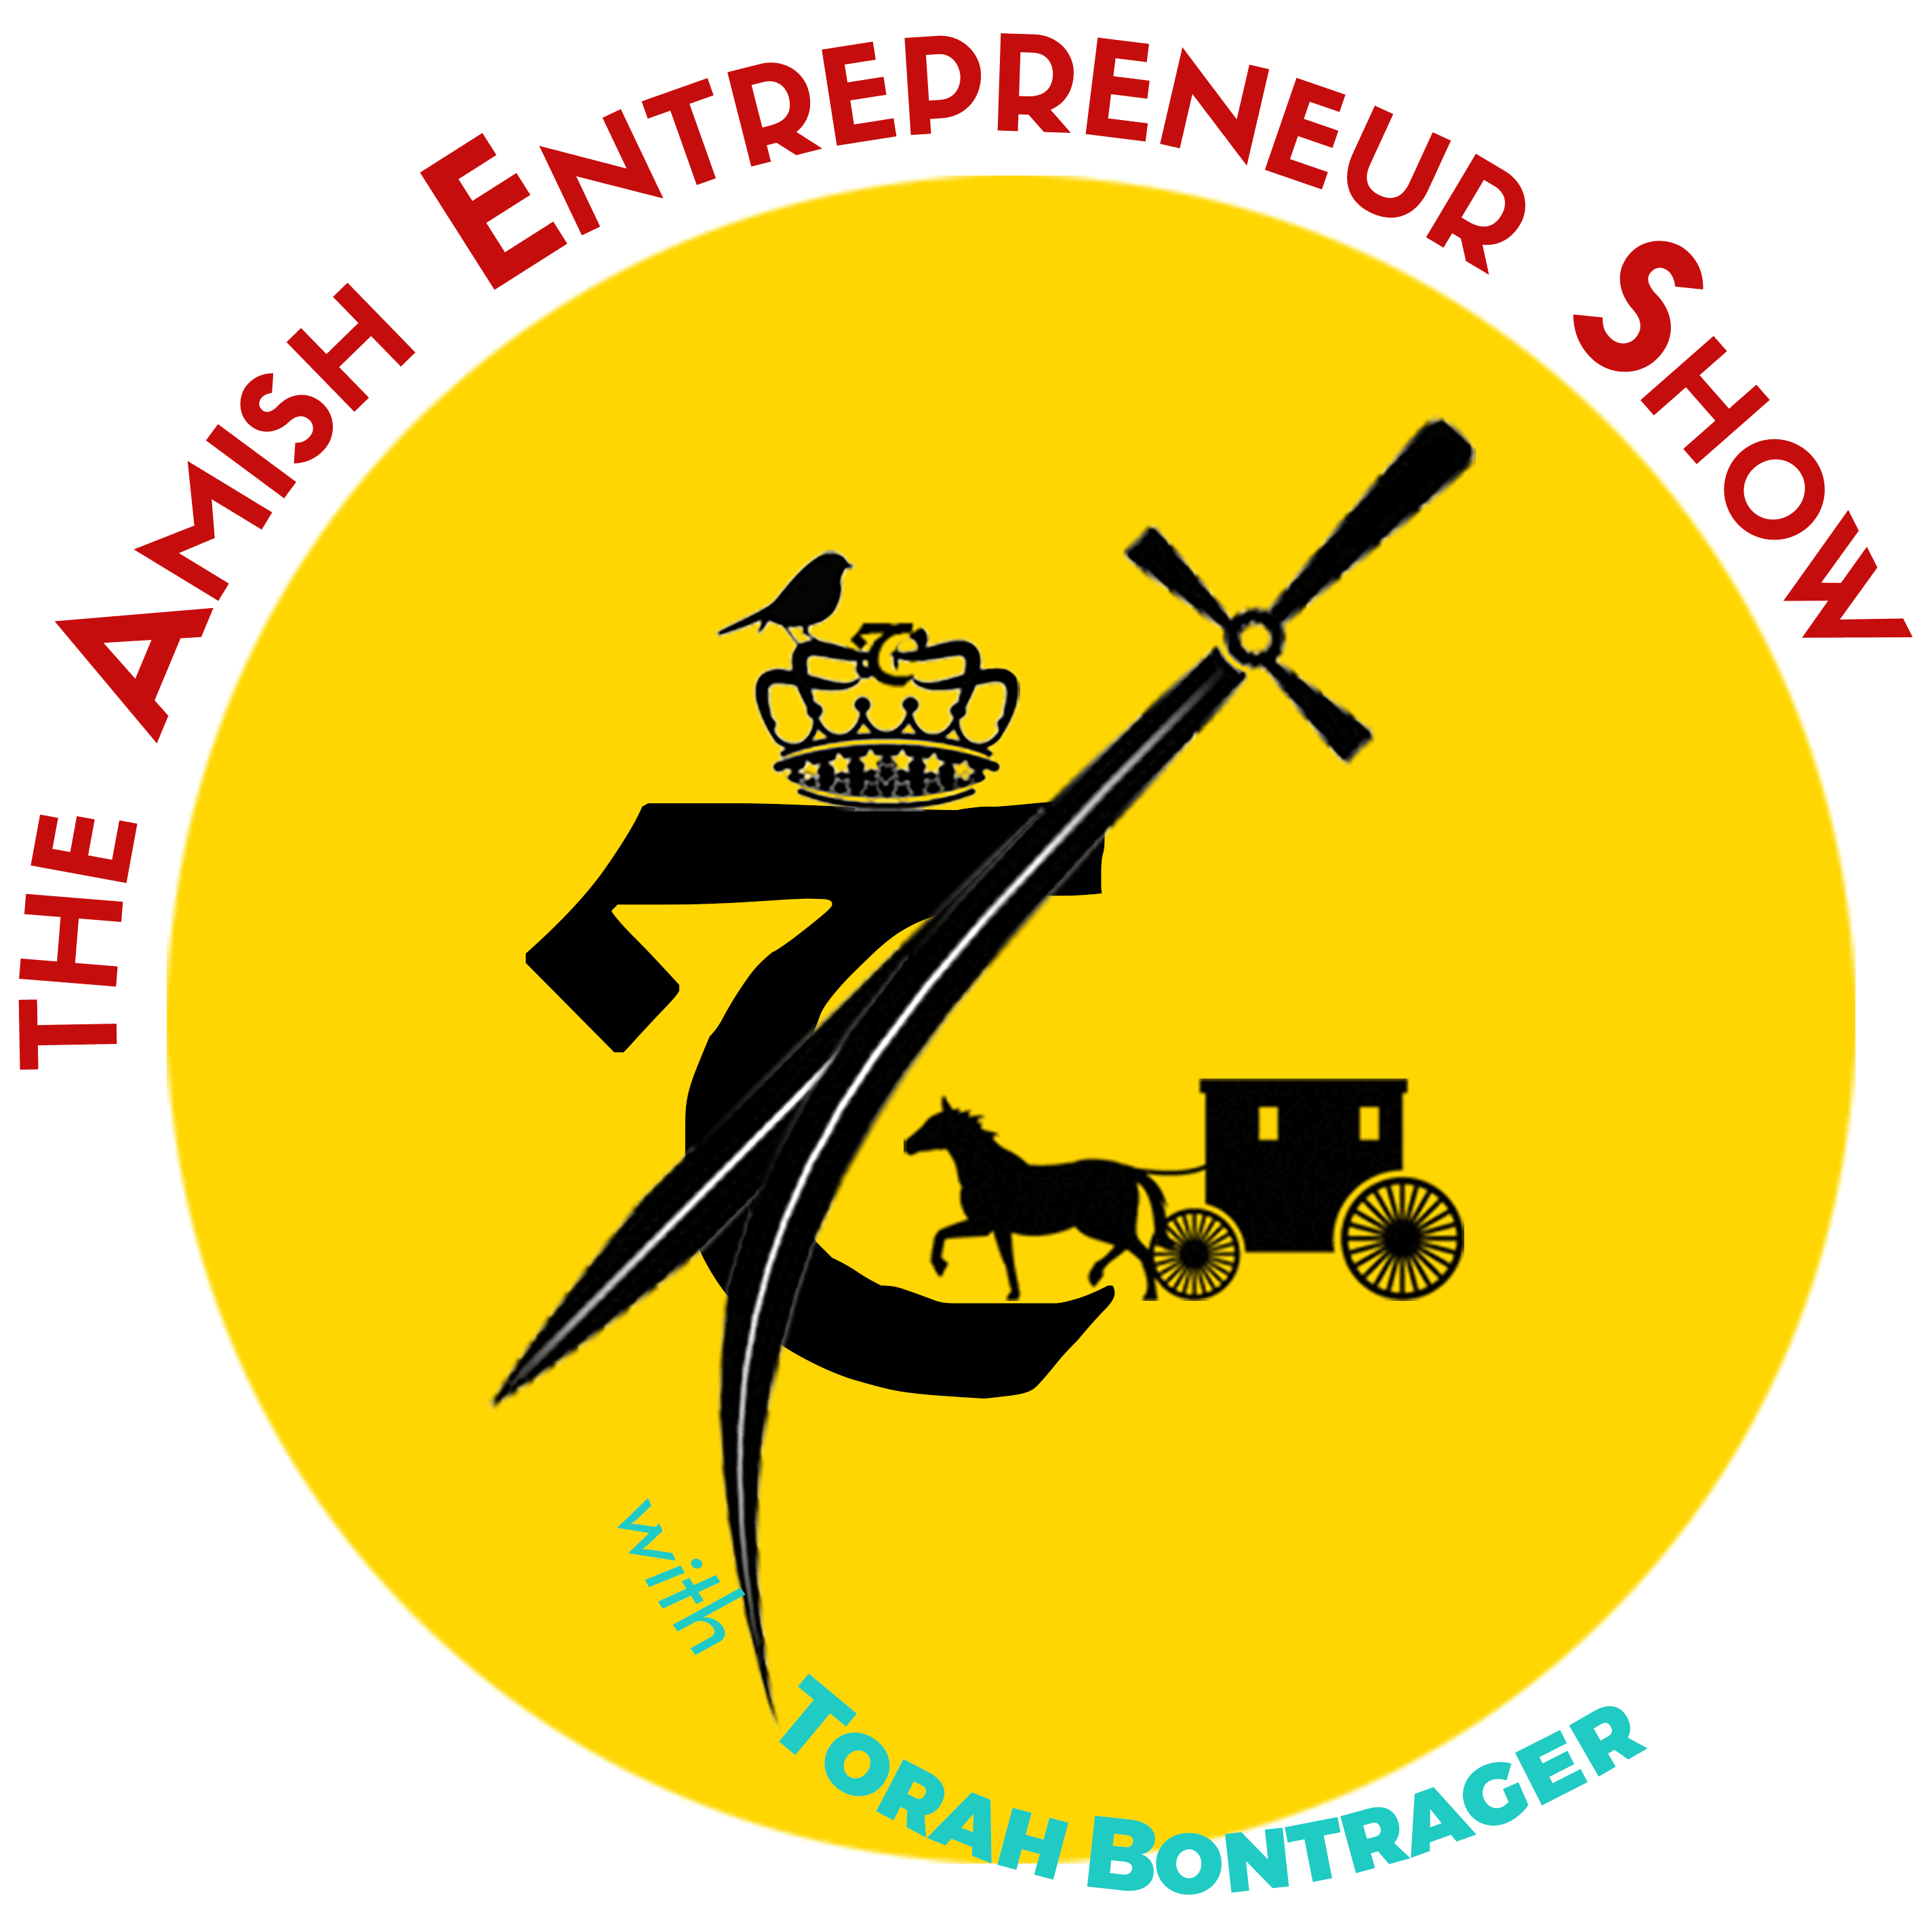 The Amish Entrepreneur Show with Torah Bontrager